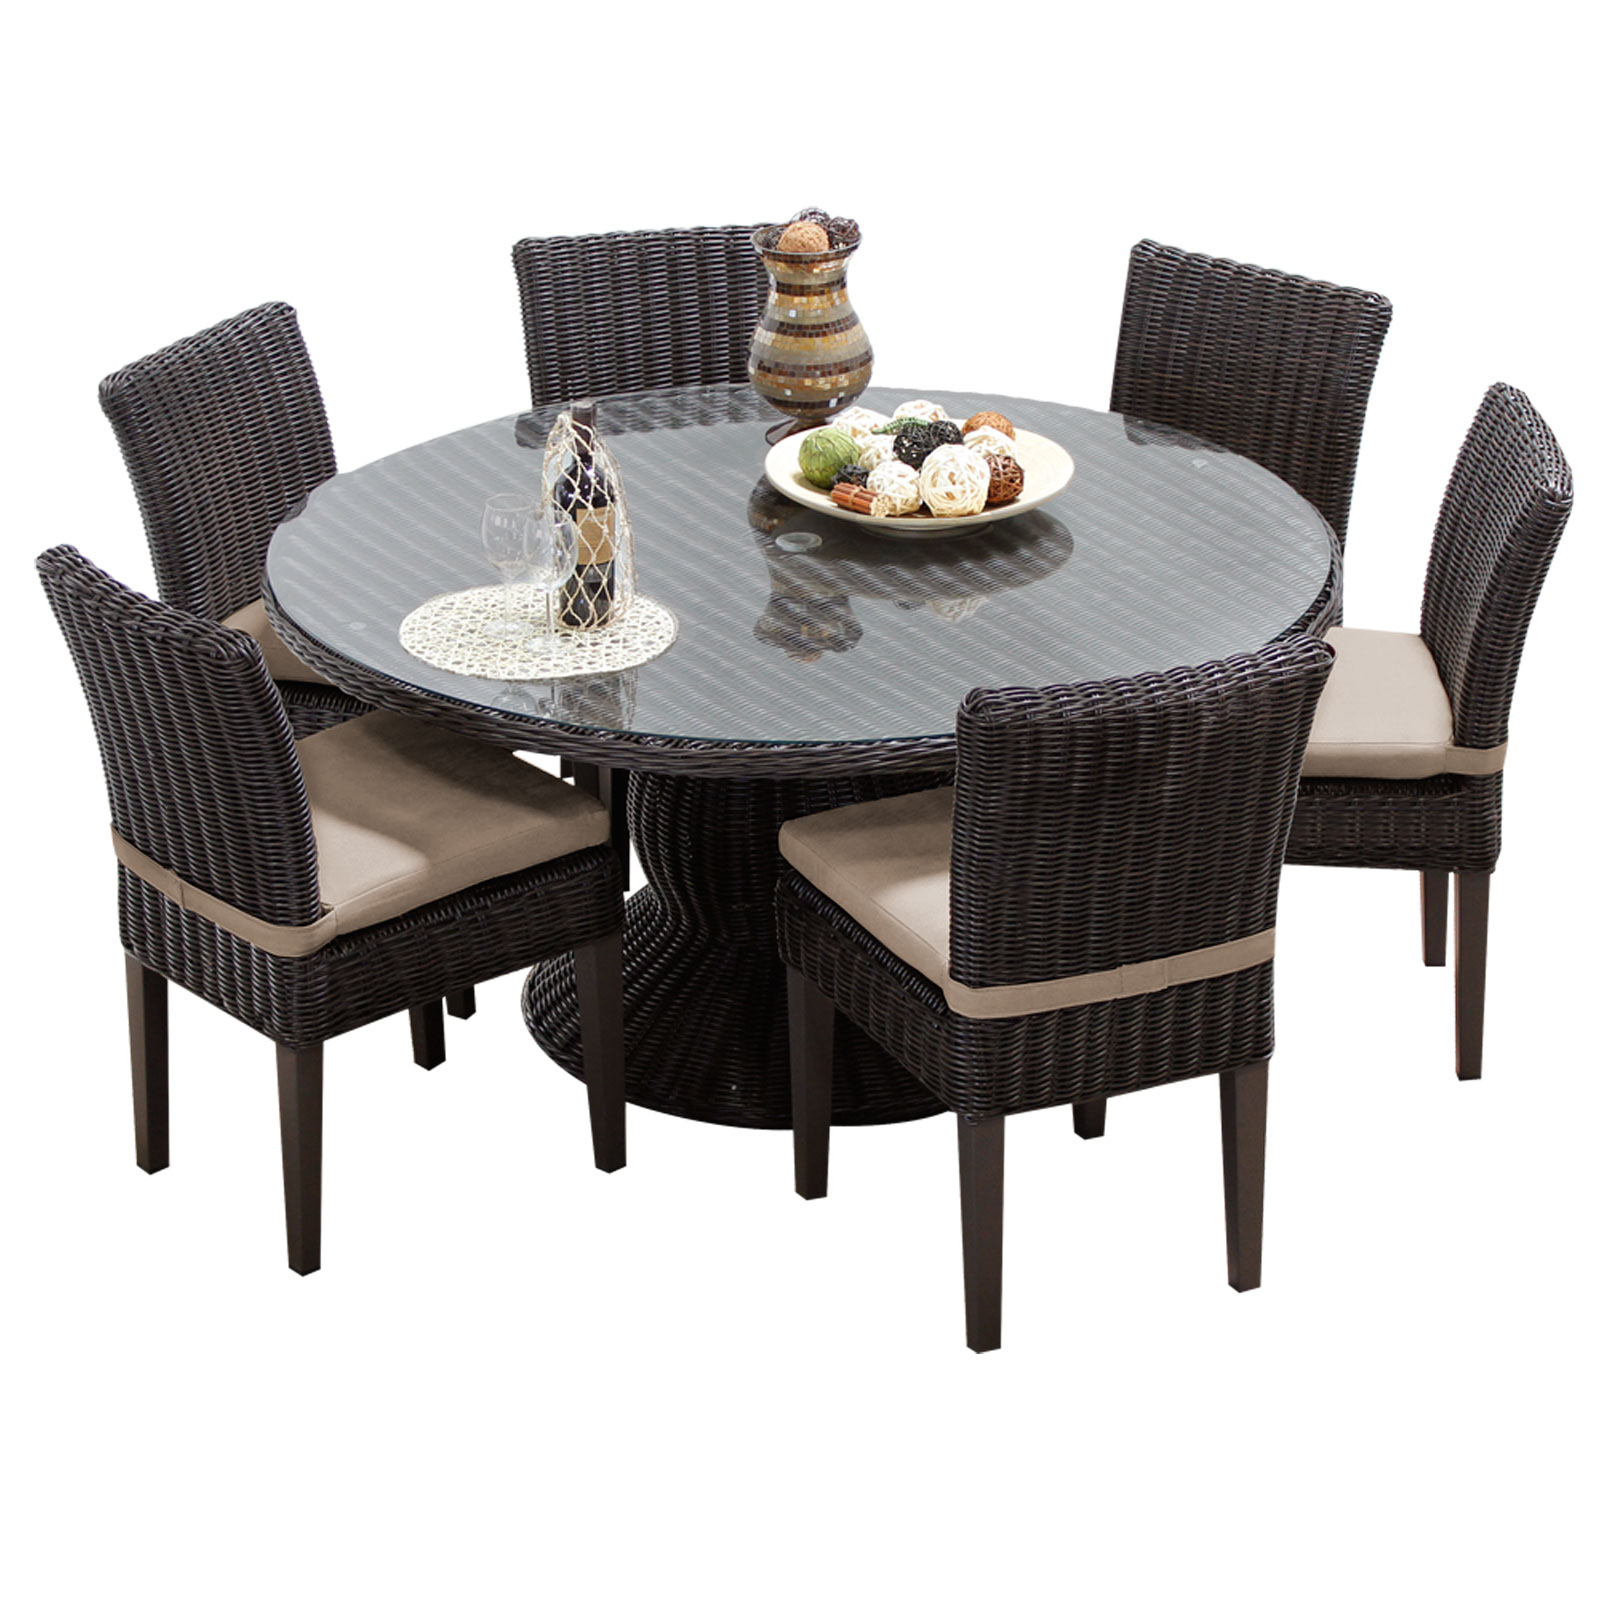 Rustico 60 Inch Outdoor Patio Dining Table With 6 Chairs